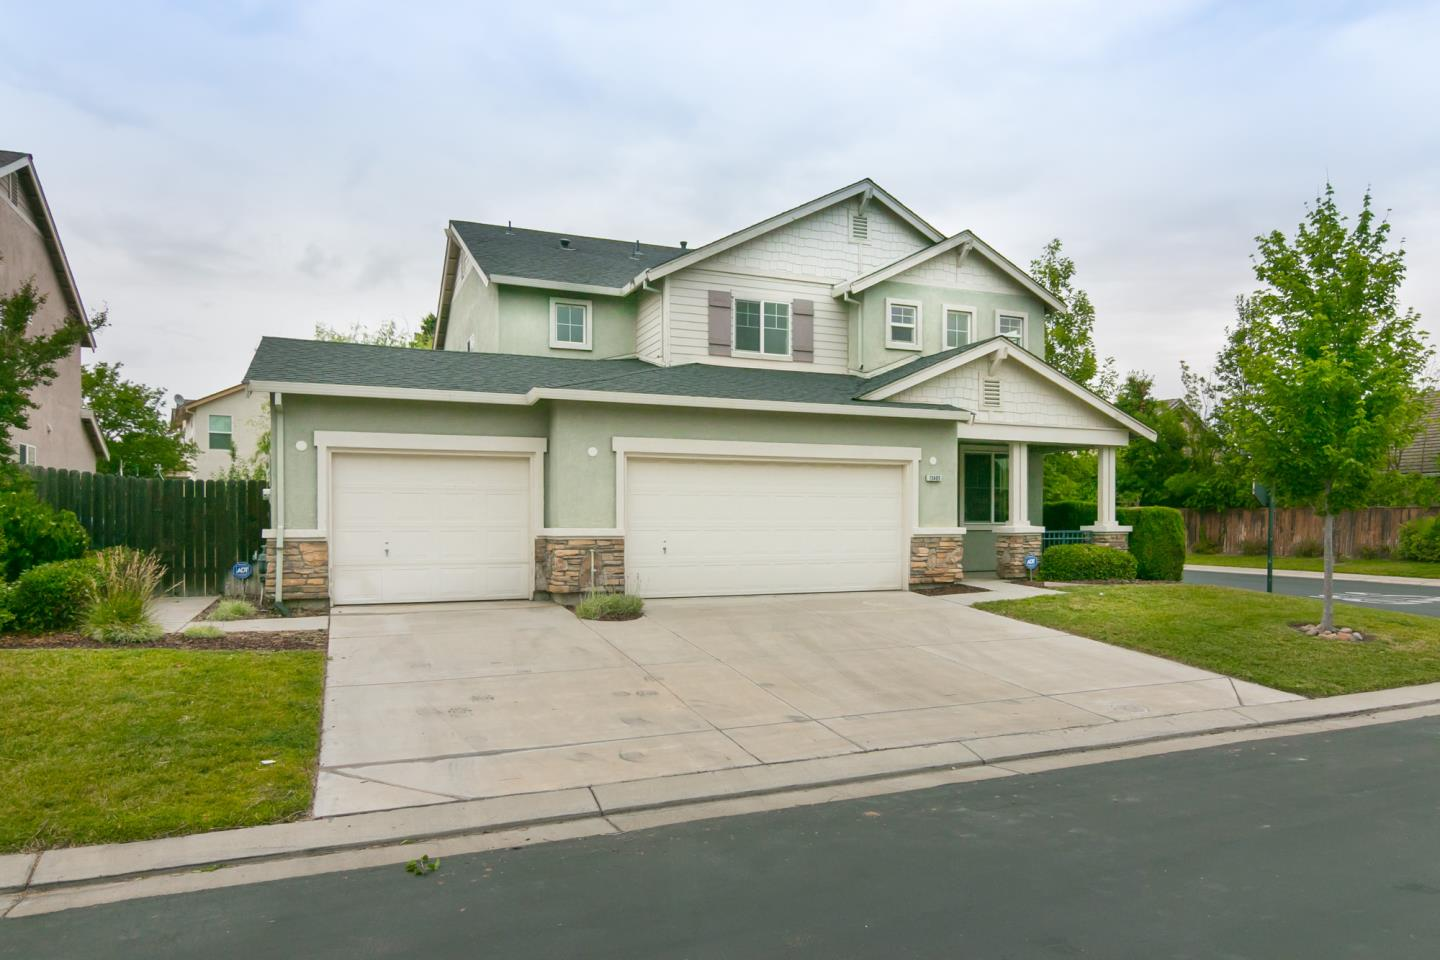 Single Family Home for Sale at 13405 Rivercrest Drive Waterford, California 95386 United States